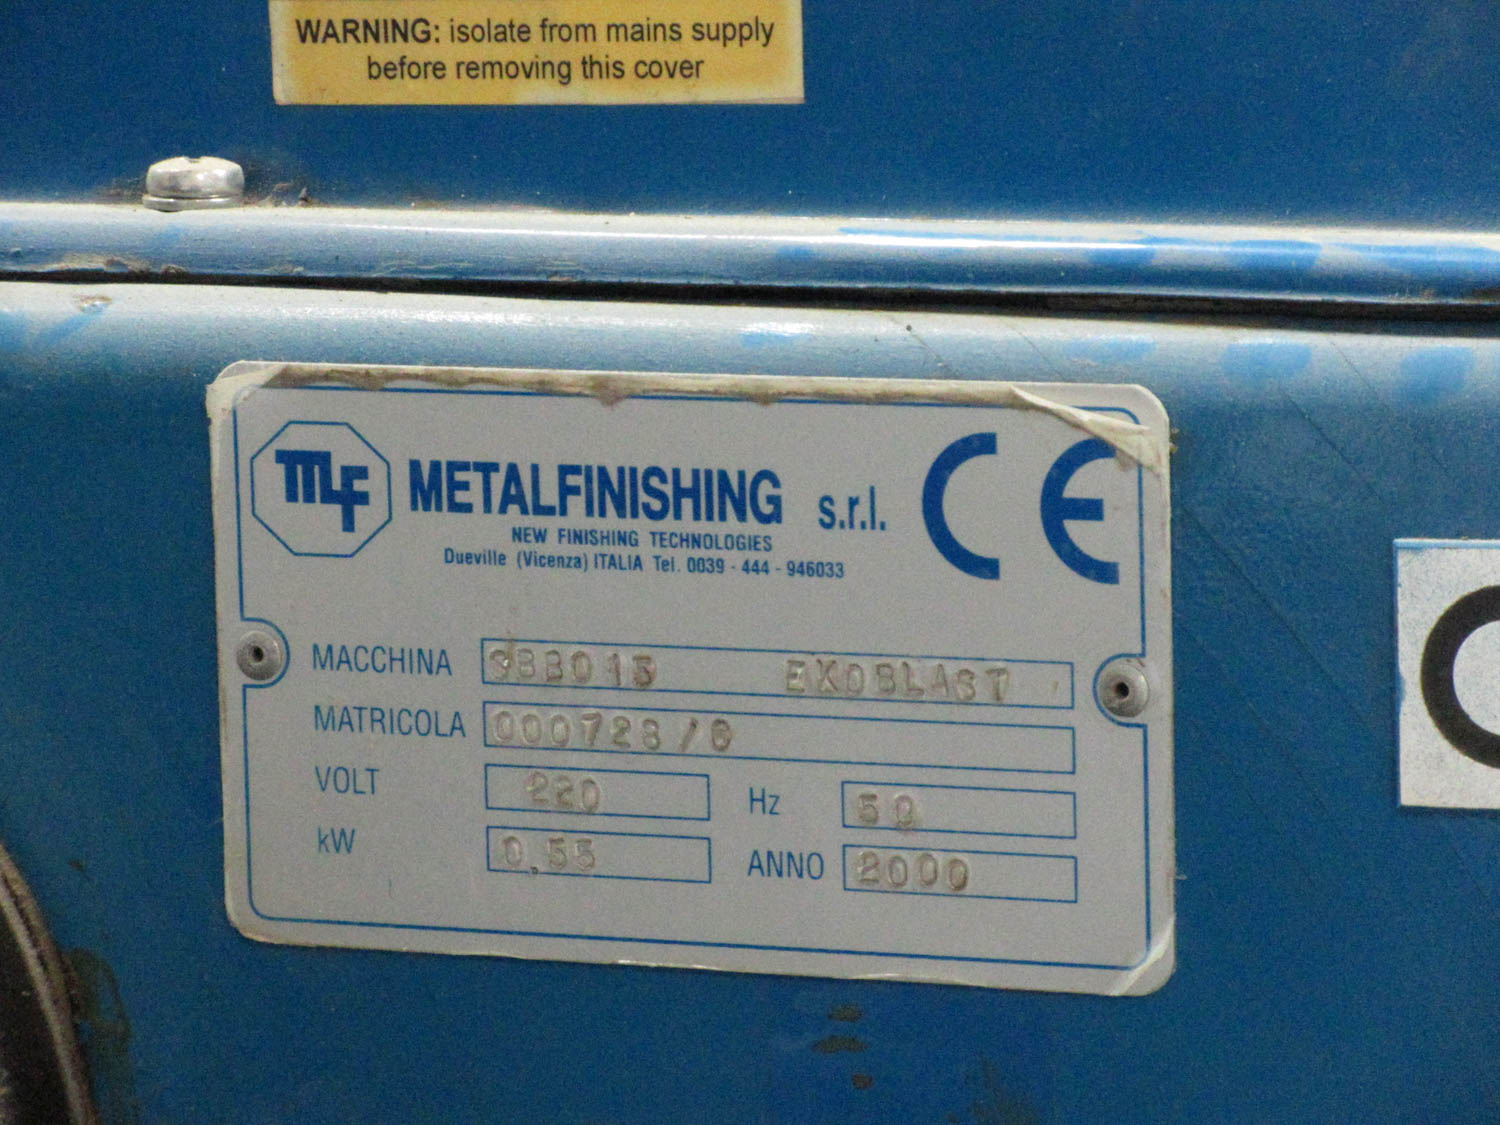 METALFINISHING MDL. SBB0 16 EKOBLAST SAND BLAST MACHINE; 50 HZ; 0.55 KW, S/N: 000728-0 (2000) [A# - Image 2 of 2